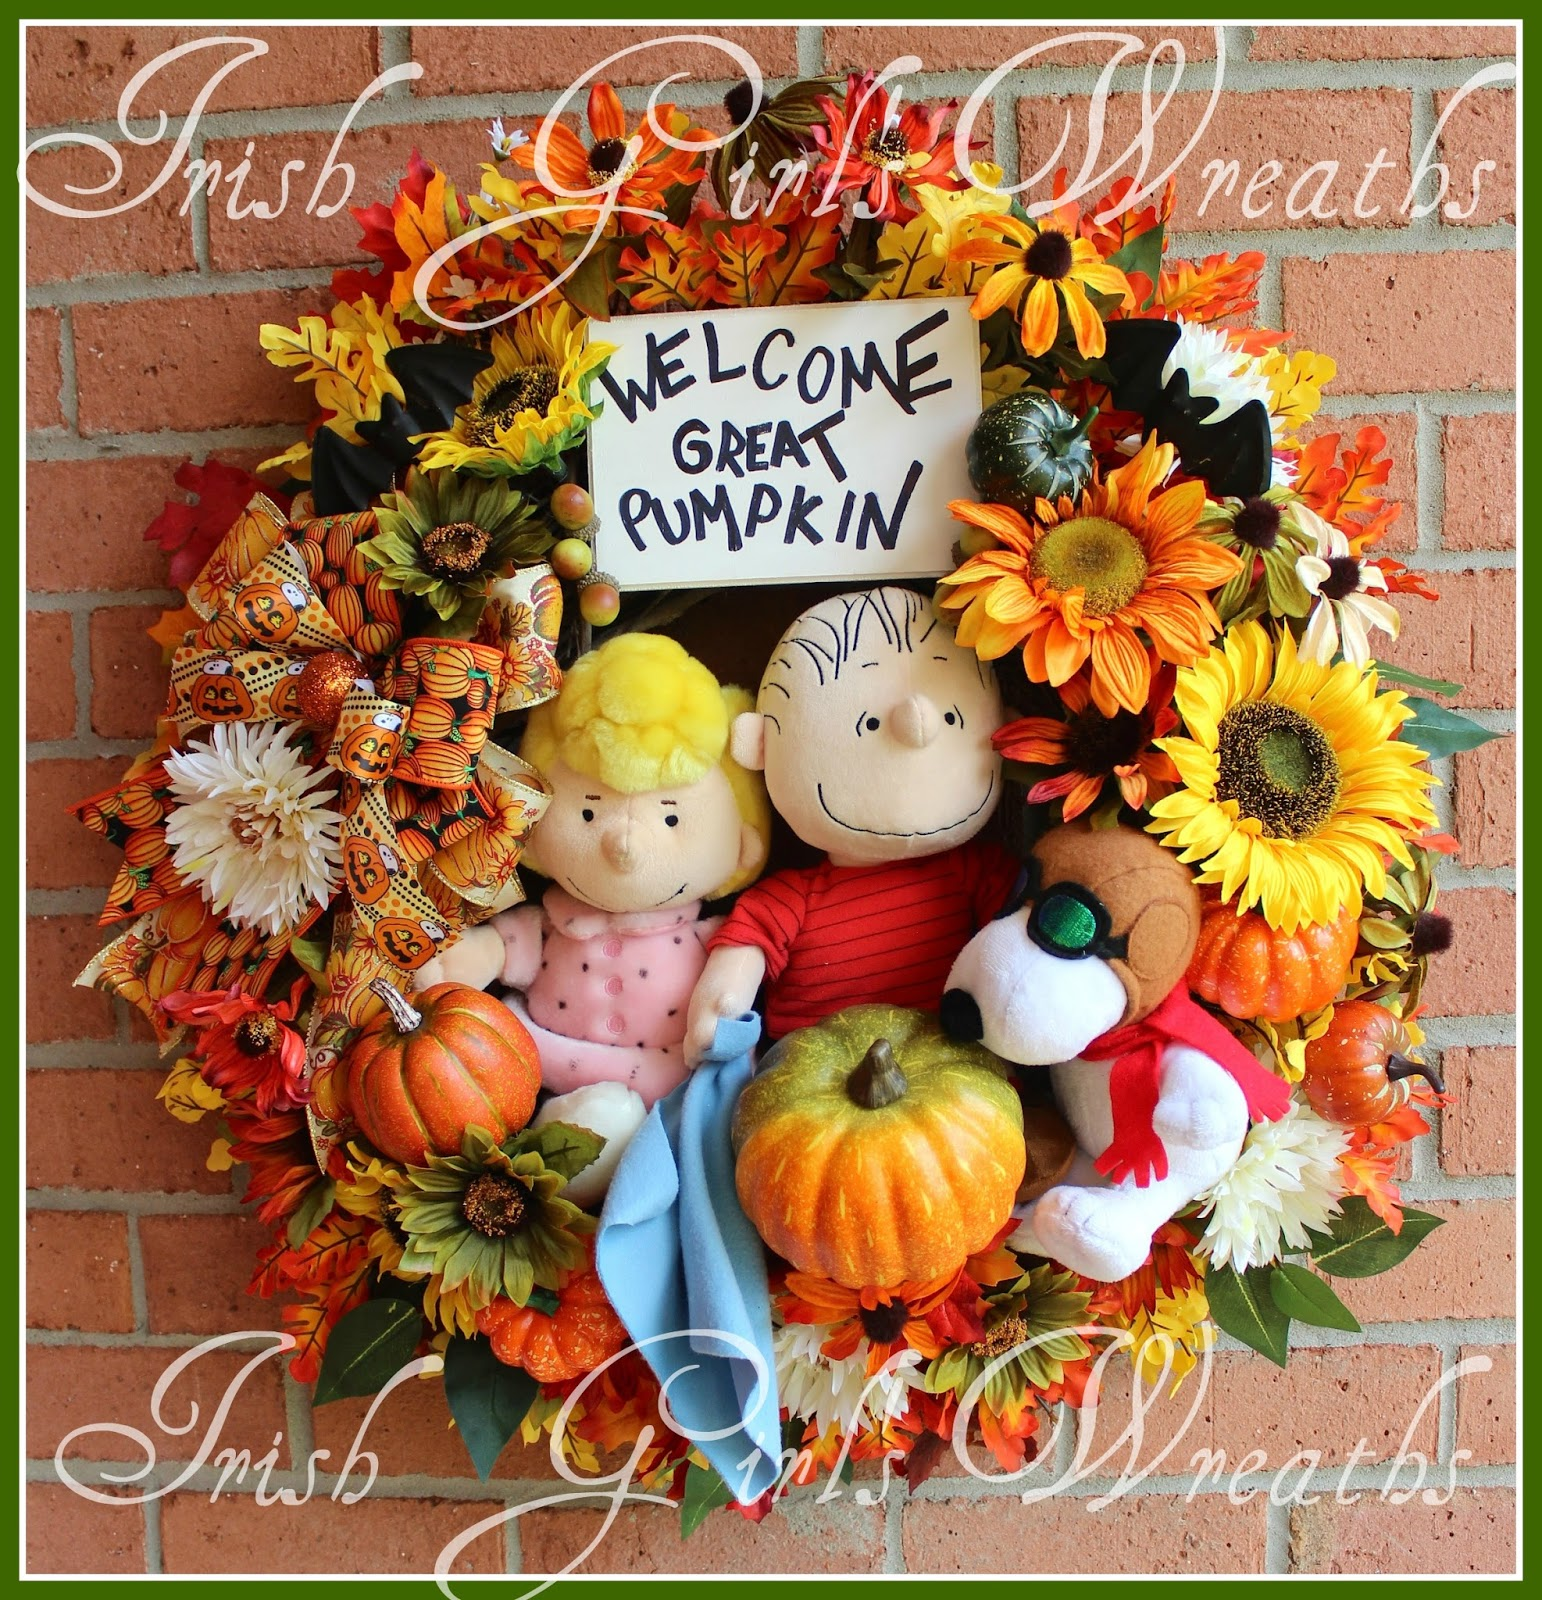 Large Waiting for the Great Pumpkin Halloween Wreath, Snoopy, Linus, Sally, Peanuts, Welcome Great Pumpkin Sign